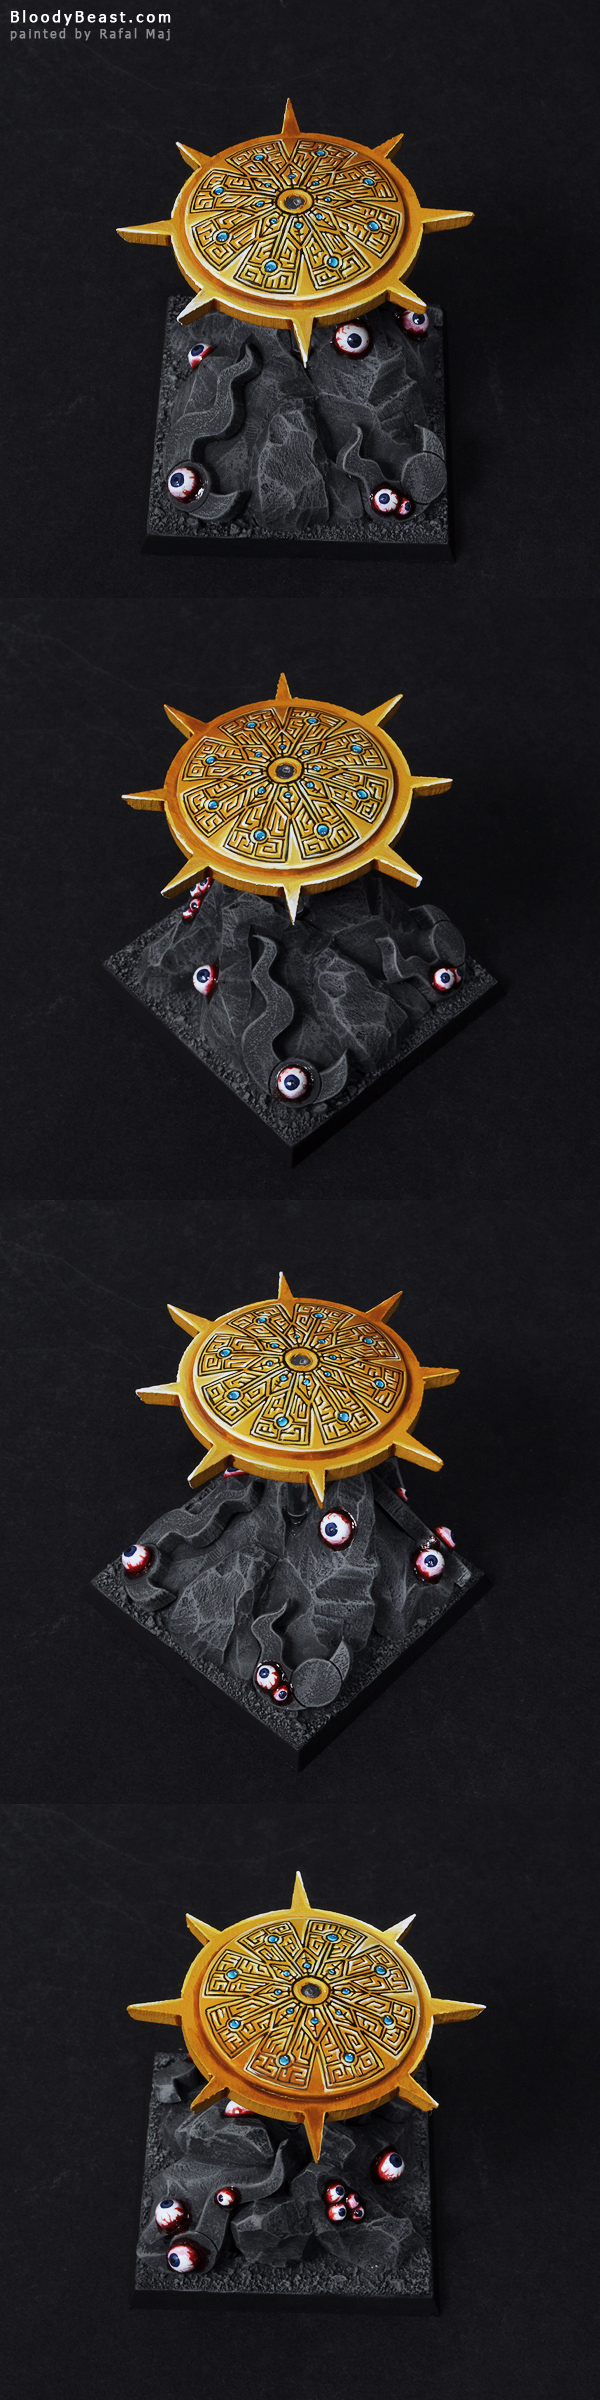 Disc of Tzeentch painted by Rafal Maj (BloodyBeast.com)